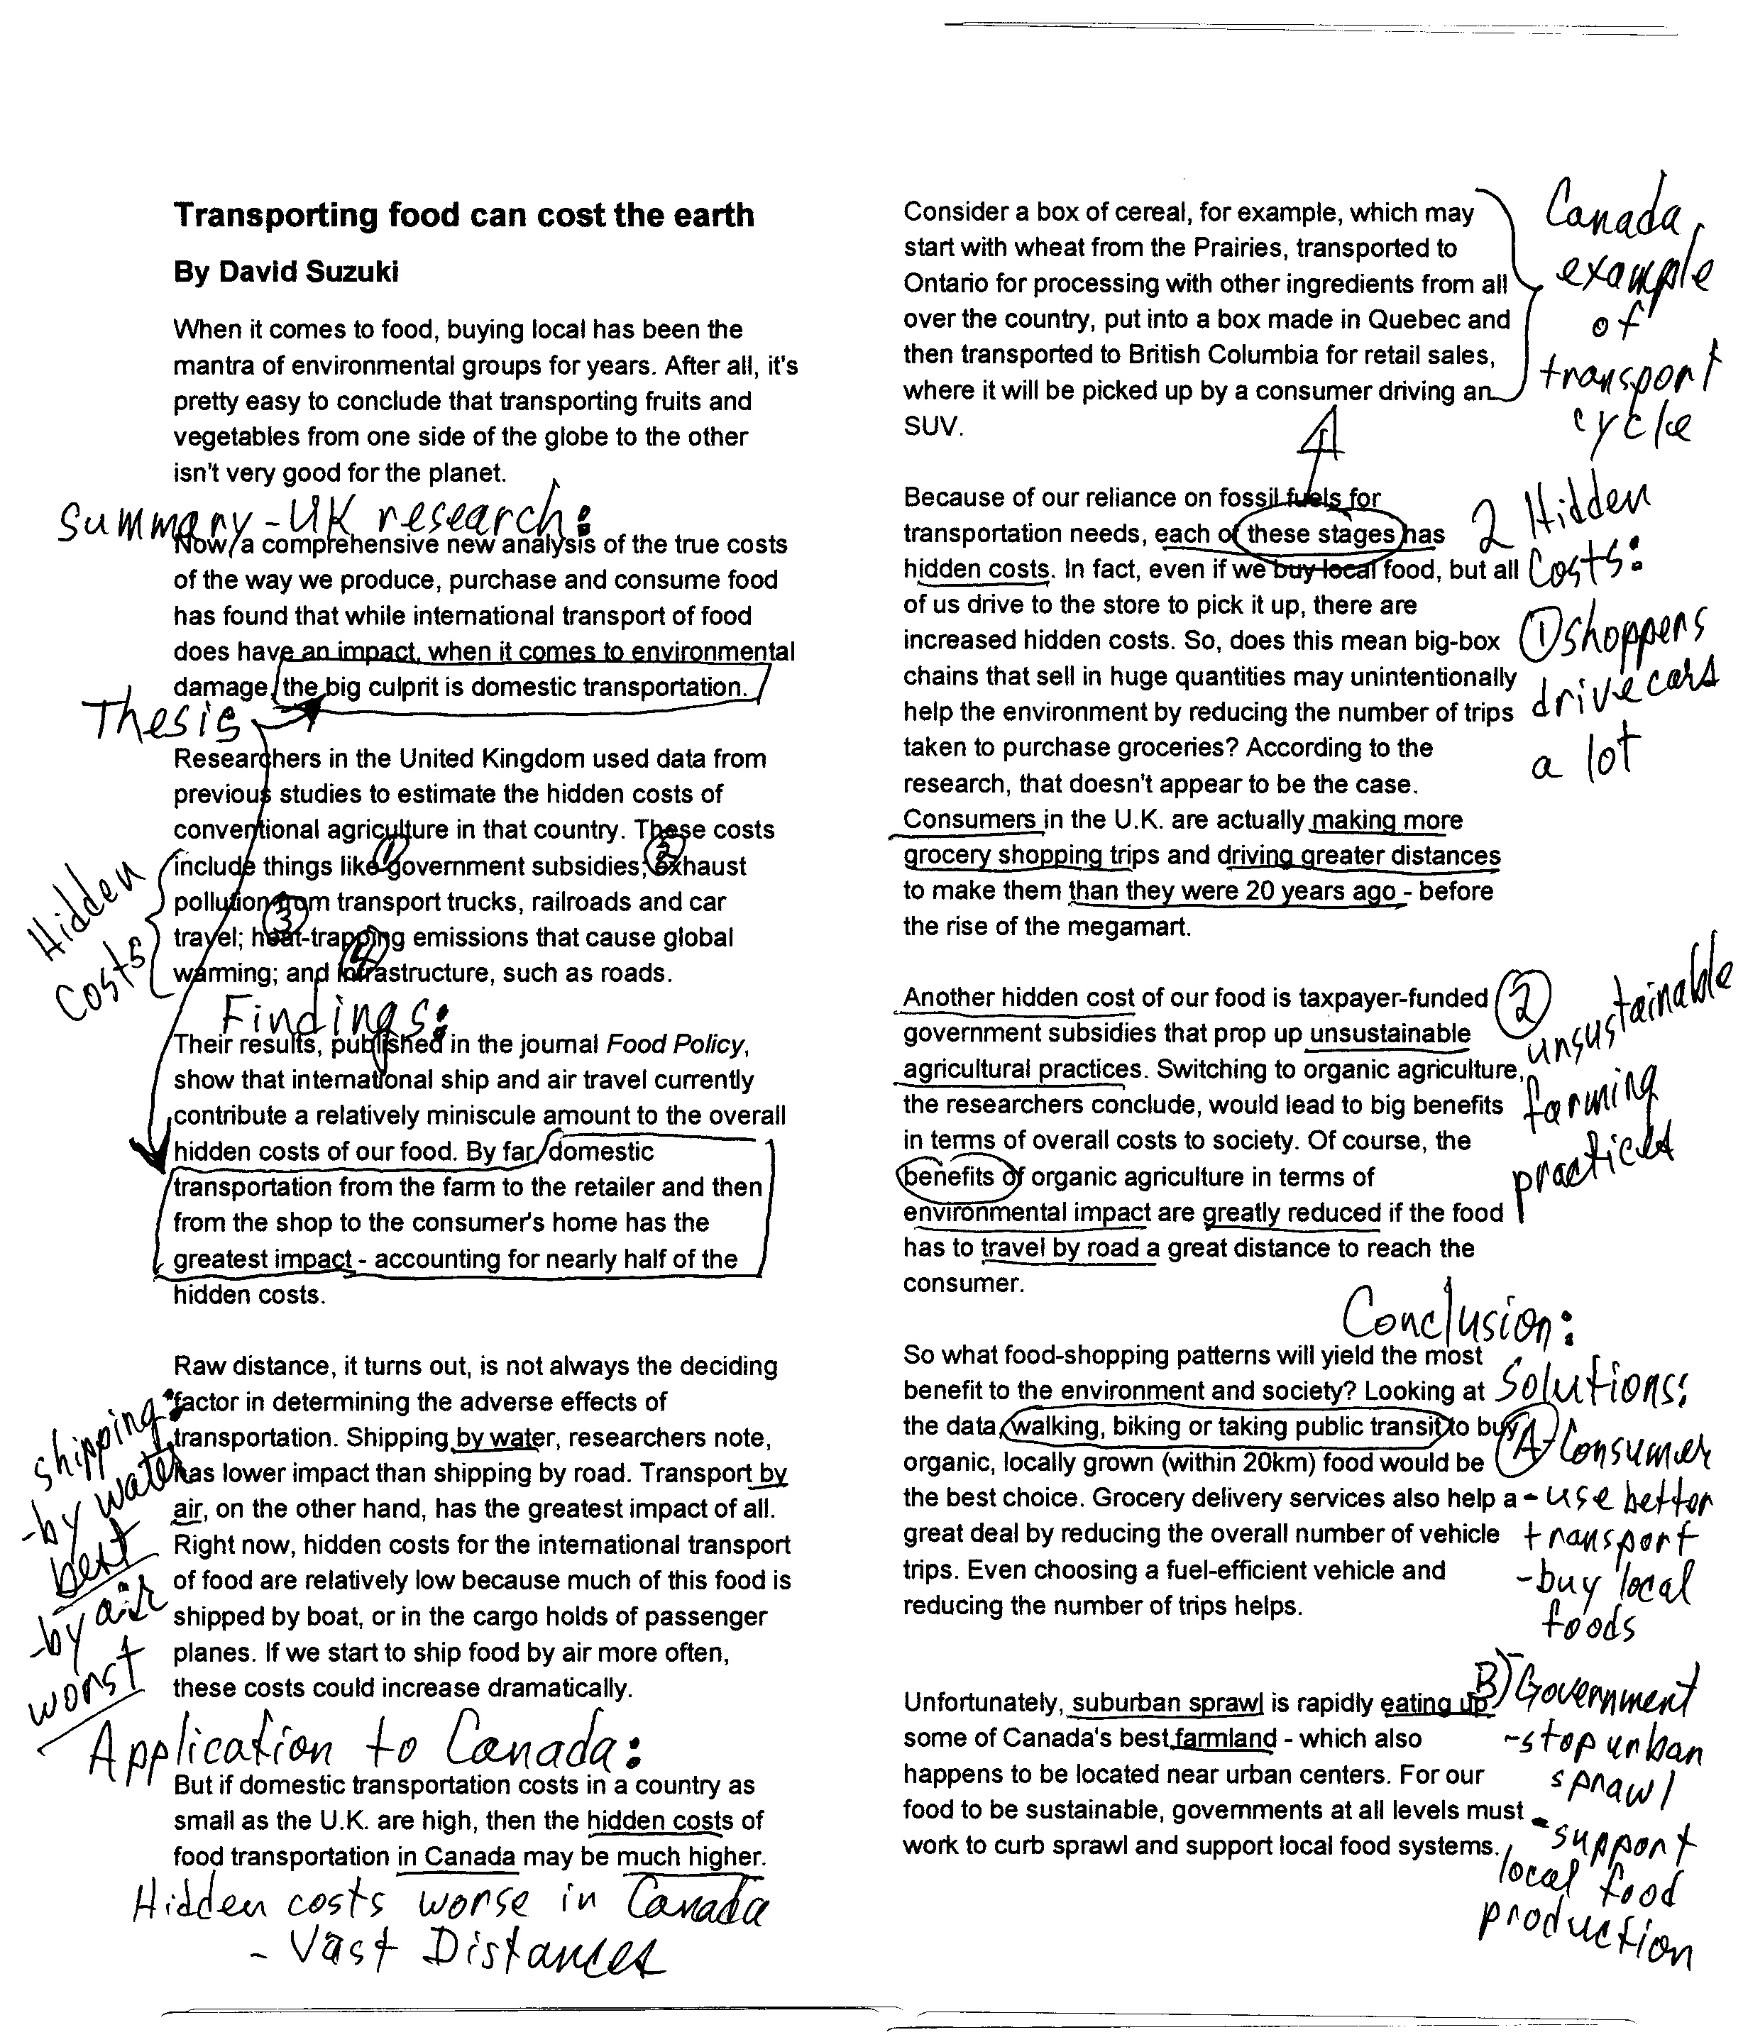 example of marked up document - Transporting food can cost the earth - David Suzuki